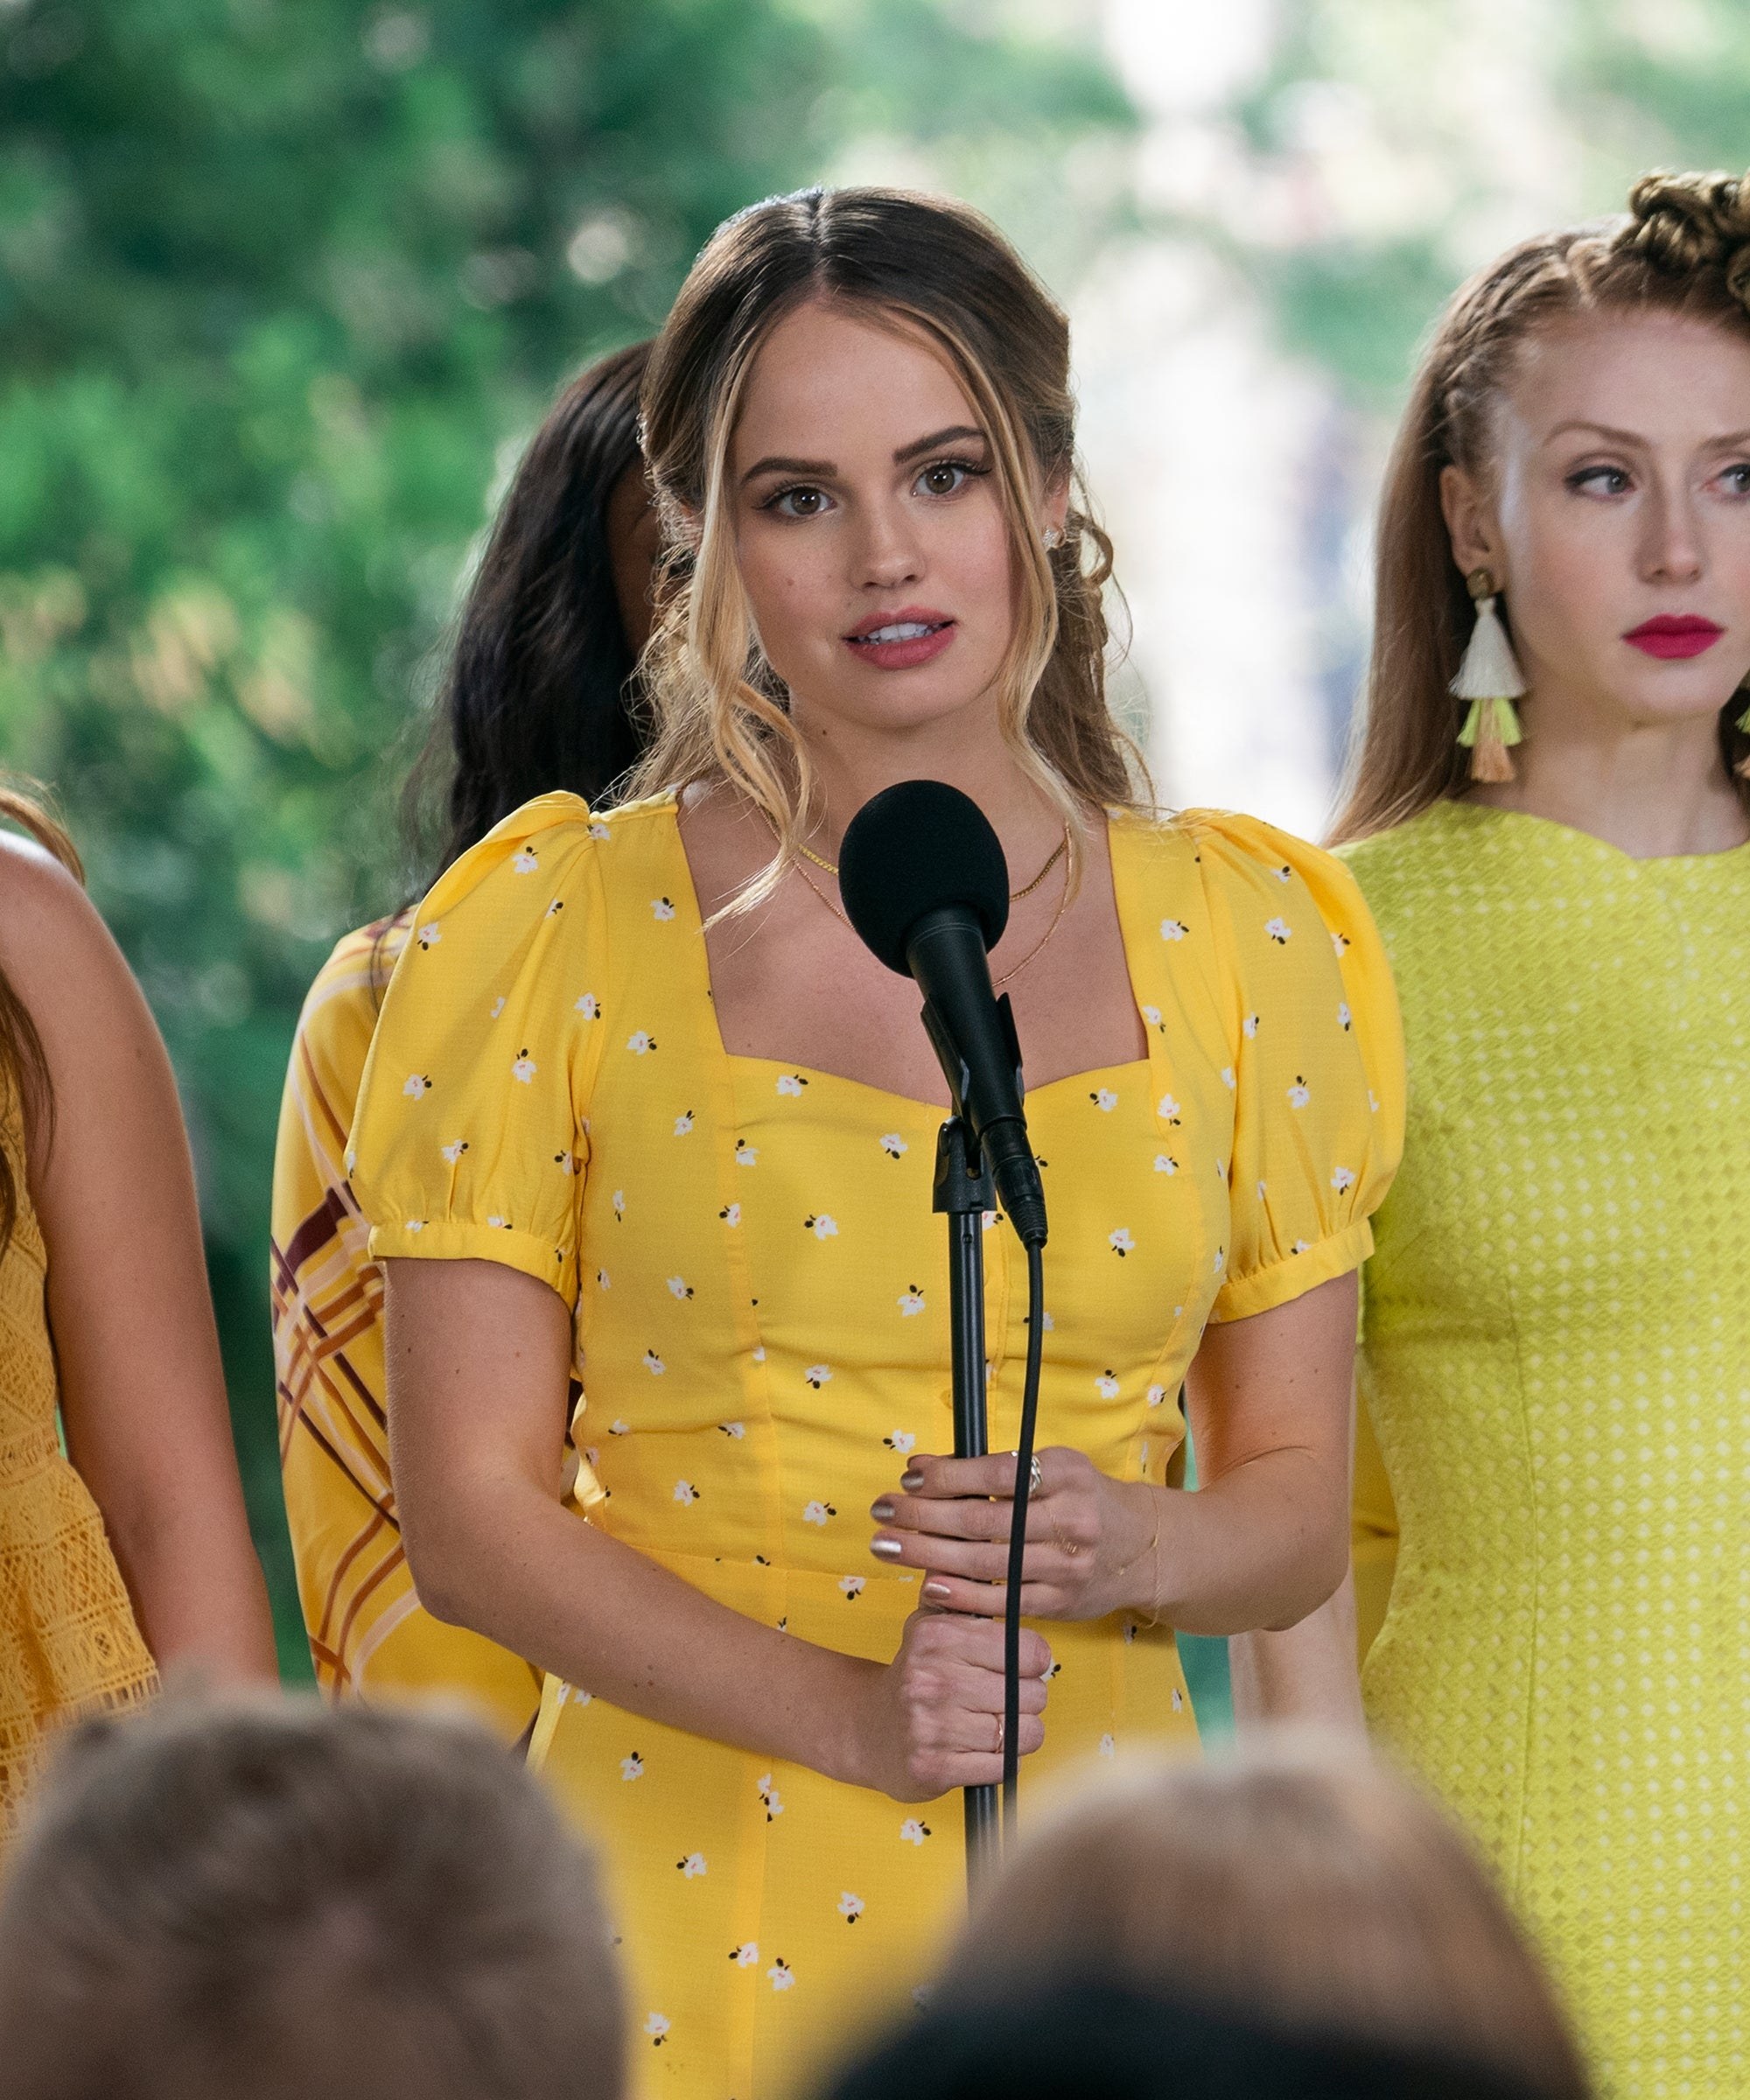 The Insatiable Ending Sets Up Evil Patty For Season 3